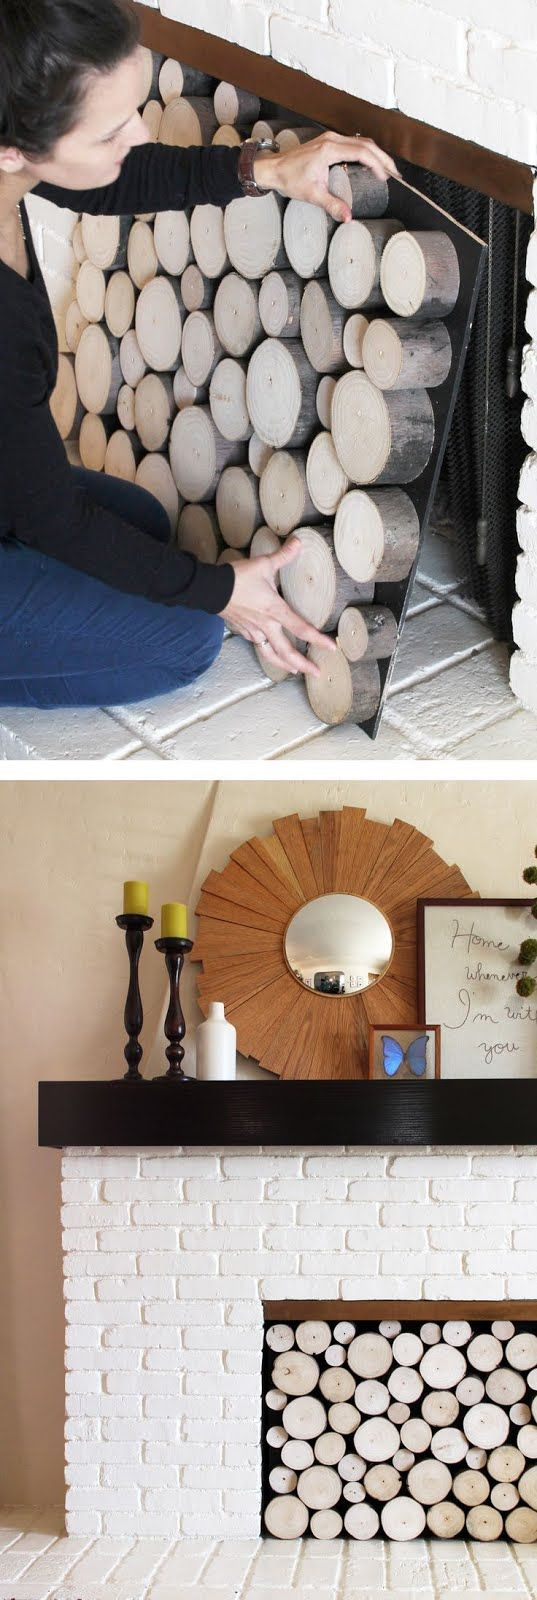 Clever fireplace coverup - cut logs glued to insert - http://www.pepperdesignblog.com/2013/02/27/pinterest-challenge-faux-log-stack-fireplace-facade/